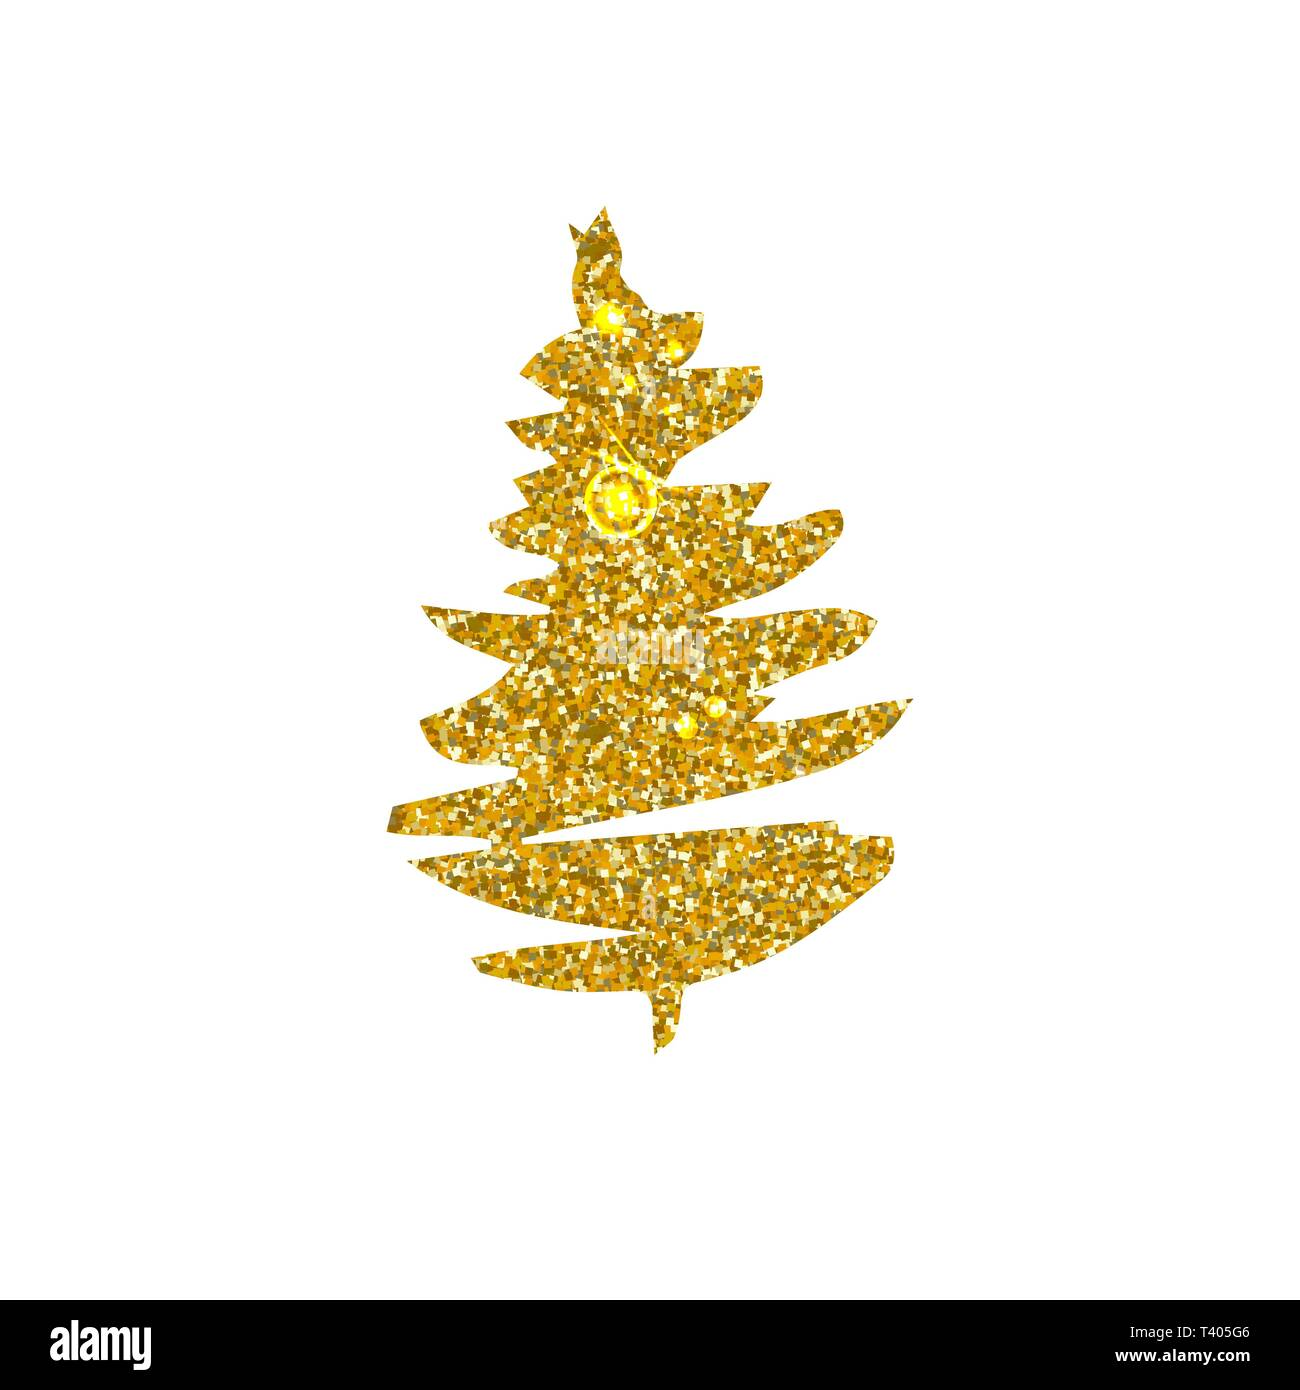 Christmas Tree Clipart Silhouette.Christmas Tree Golden Glitter Vector Silhouette Glowing